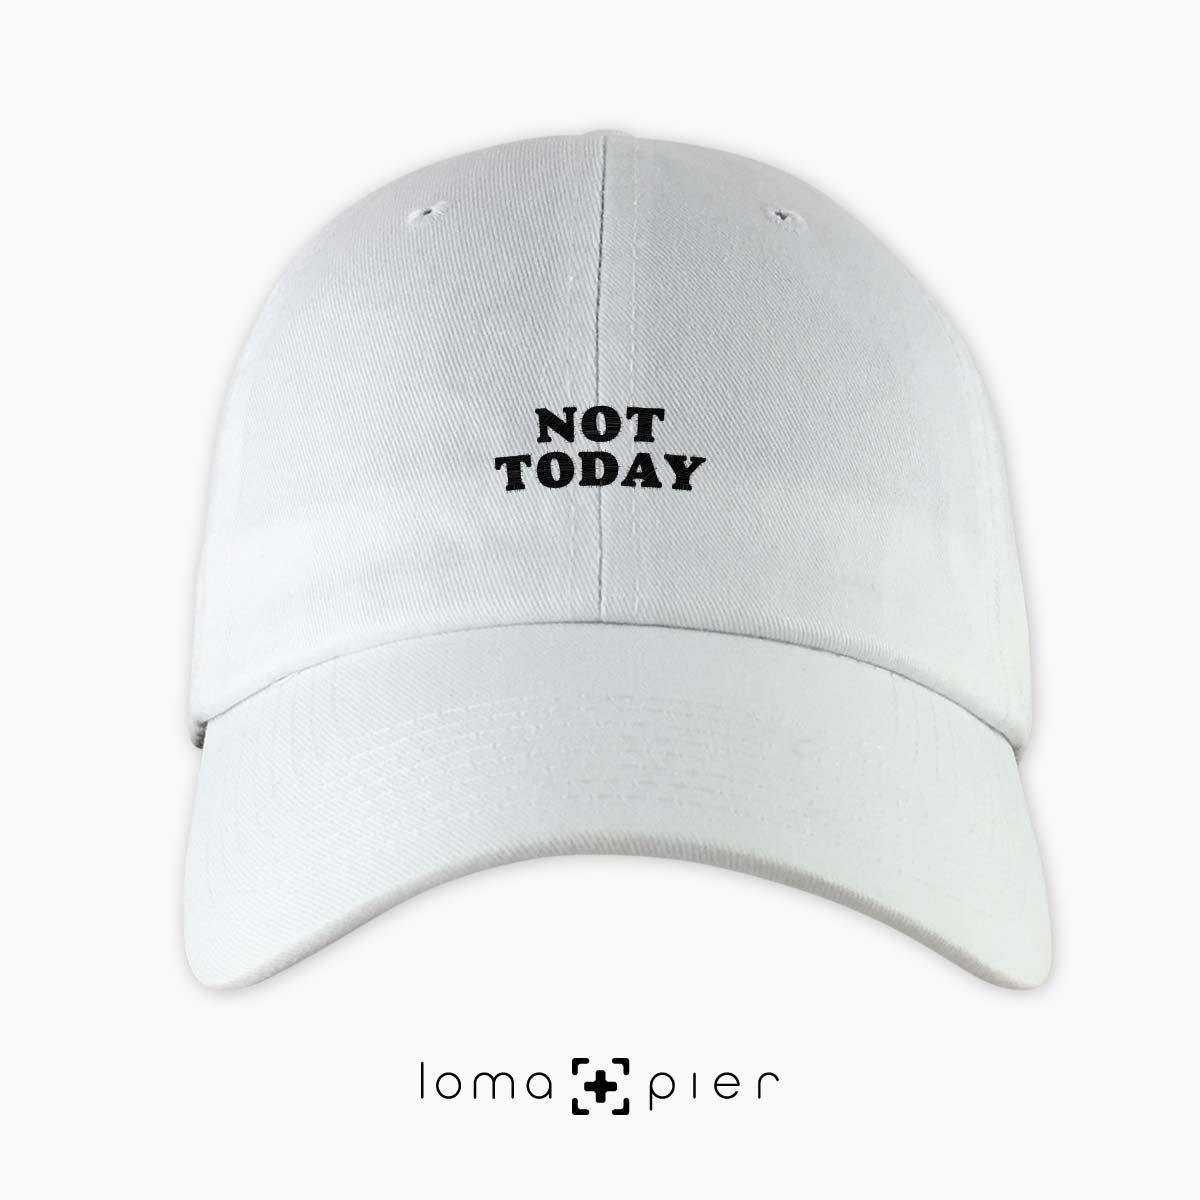 NOT TODAY funny hat by loma+pier hat store